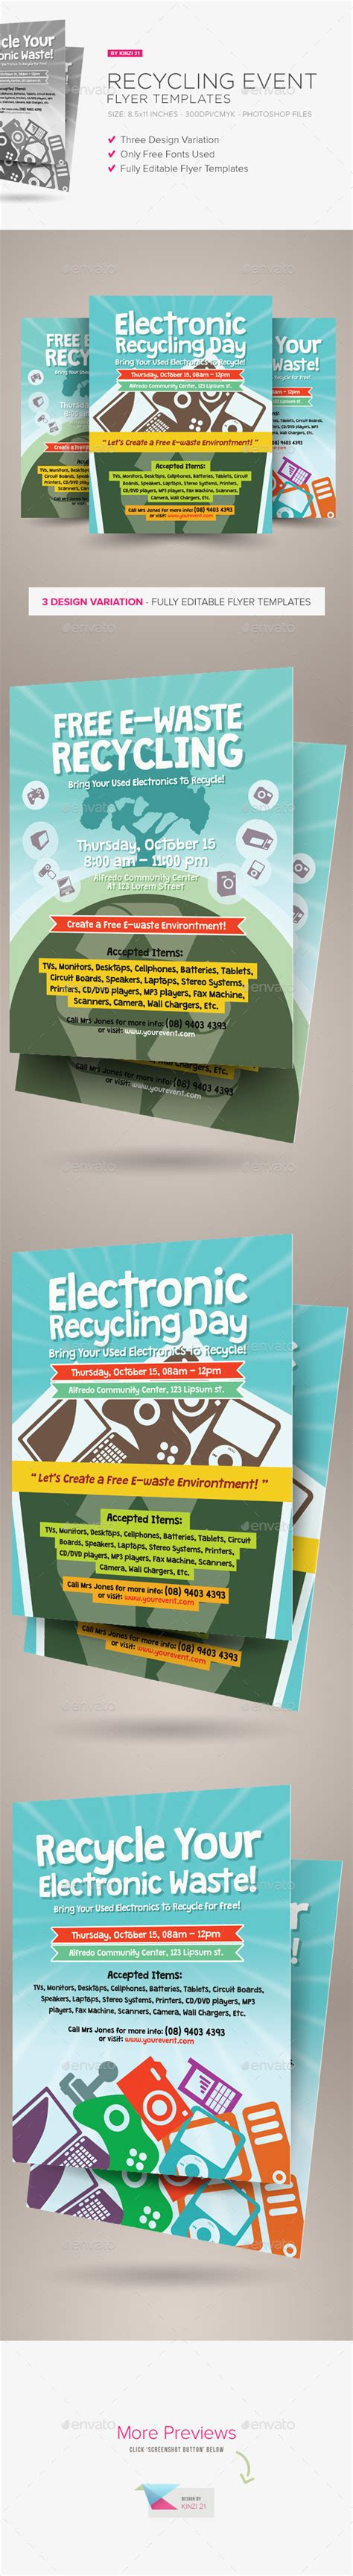 Recycling Flyers Templates Free 187 Dondrup Com Graphicriver Event Flyer Template